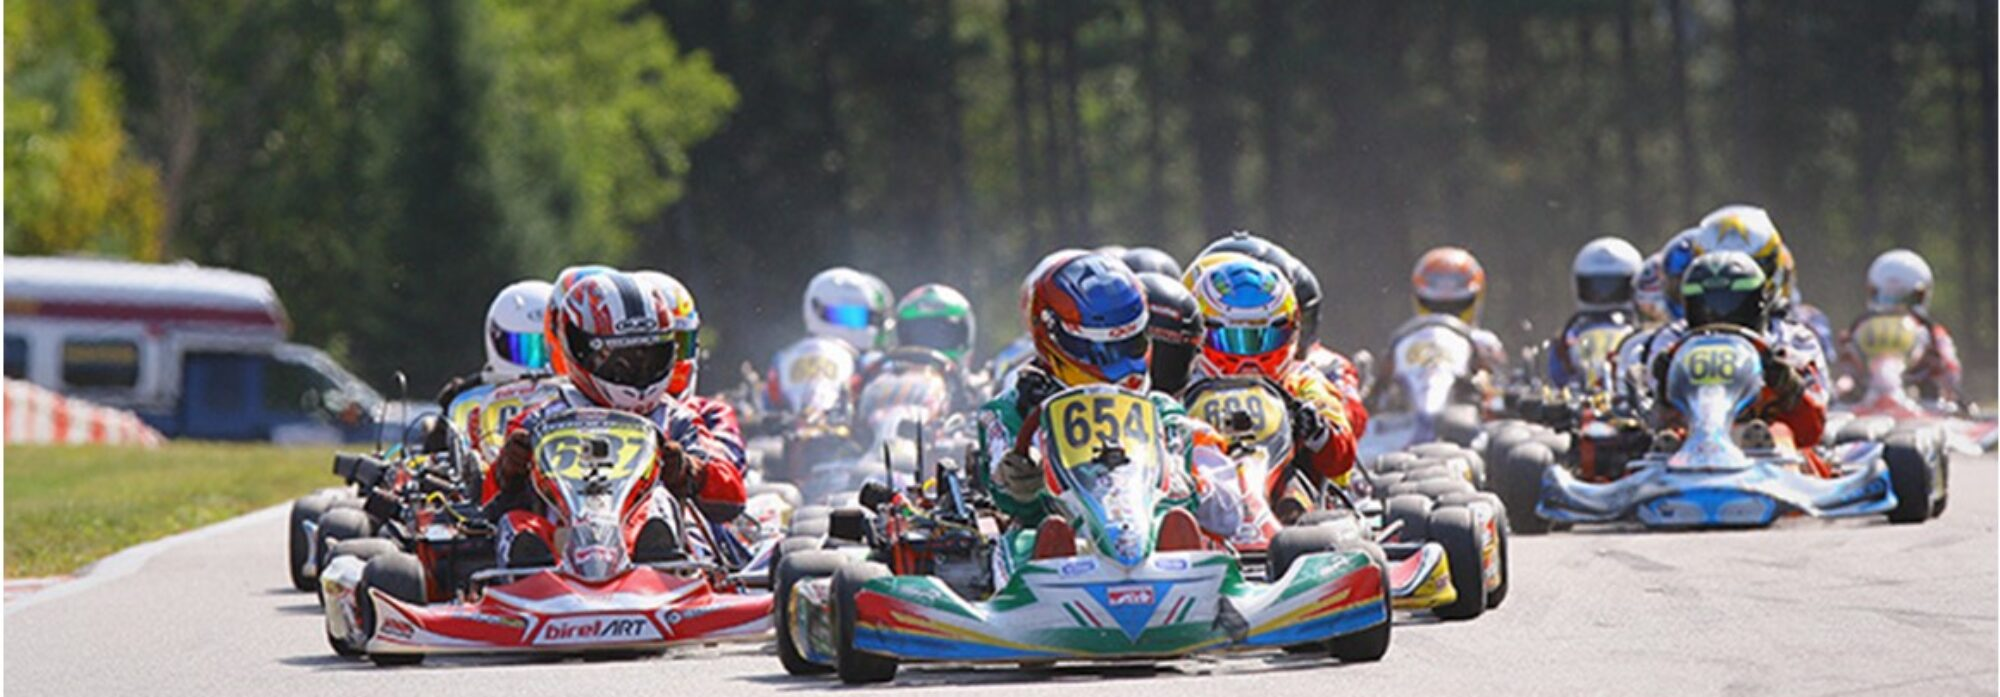 The Sudbury Kart Club